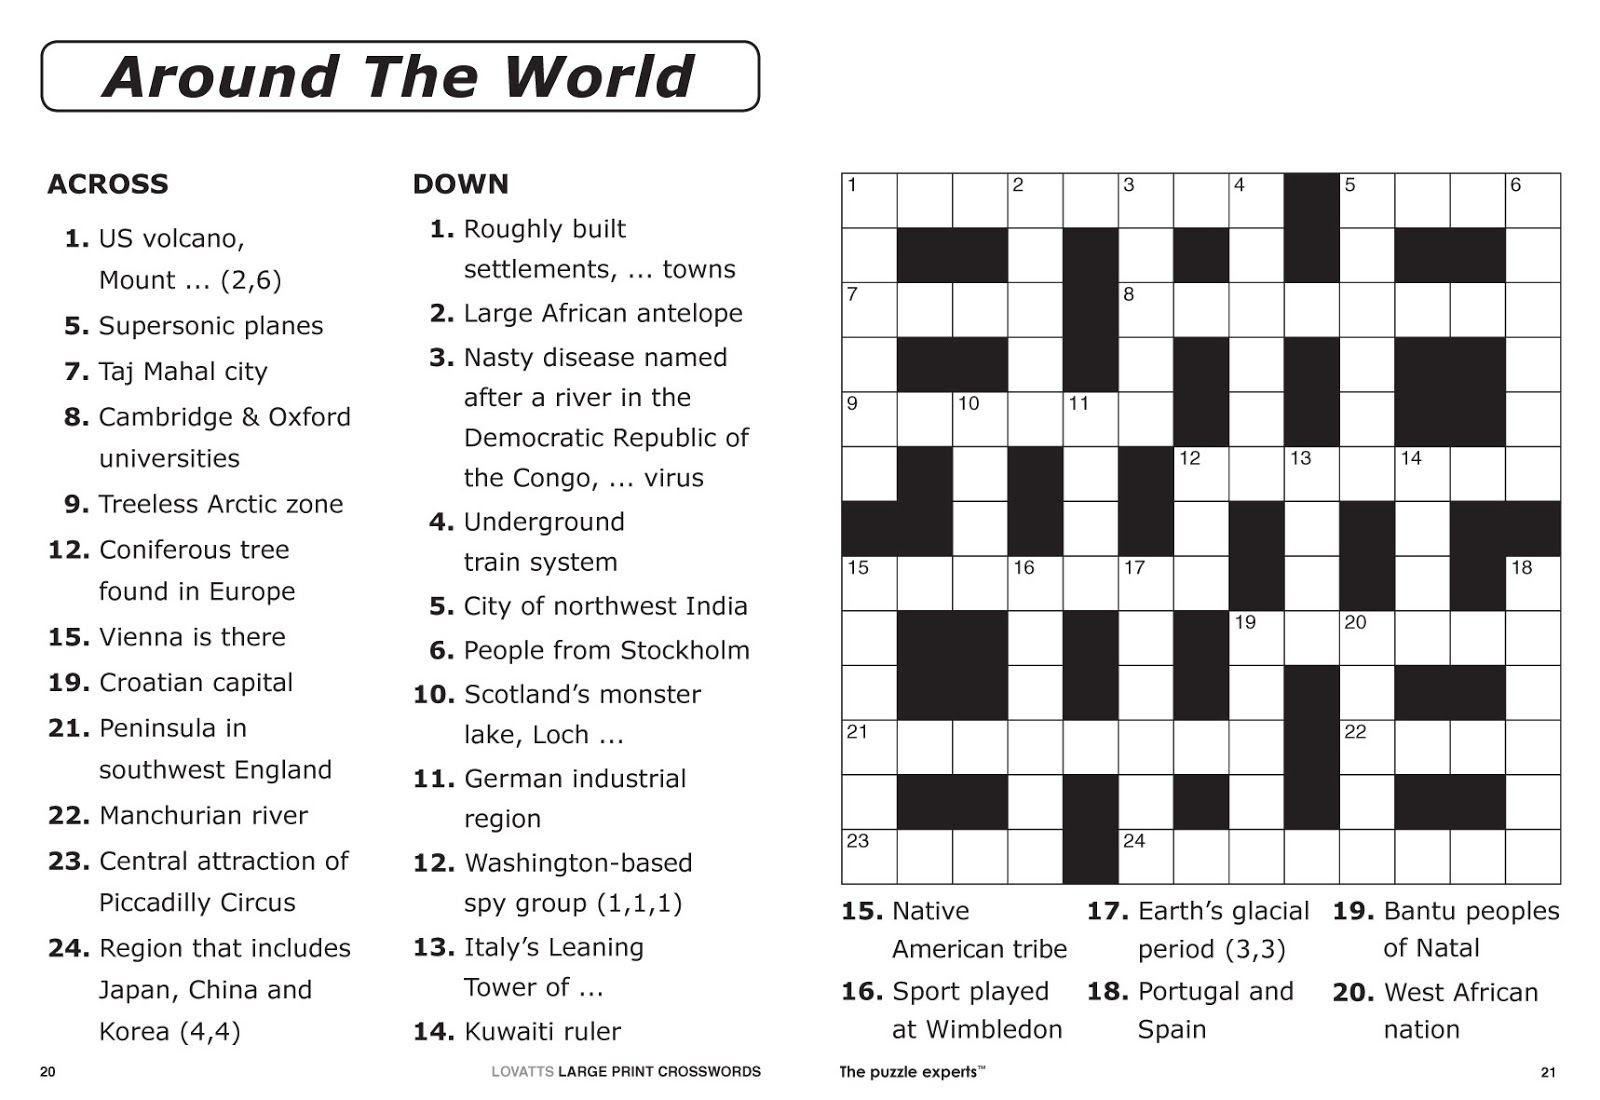 Free Printable Large Print Crossword Puzzles | M3U8 - Free Printable Puzzles For Adults